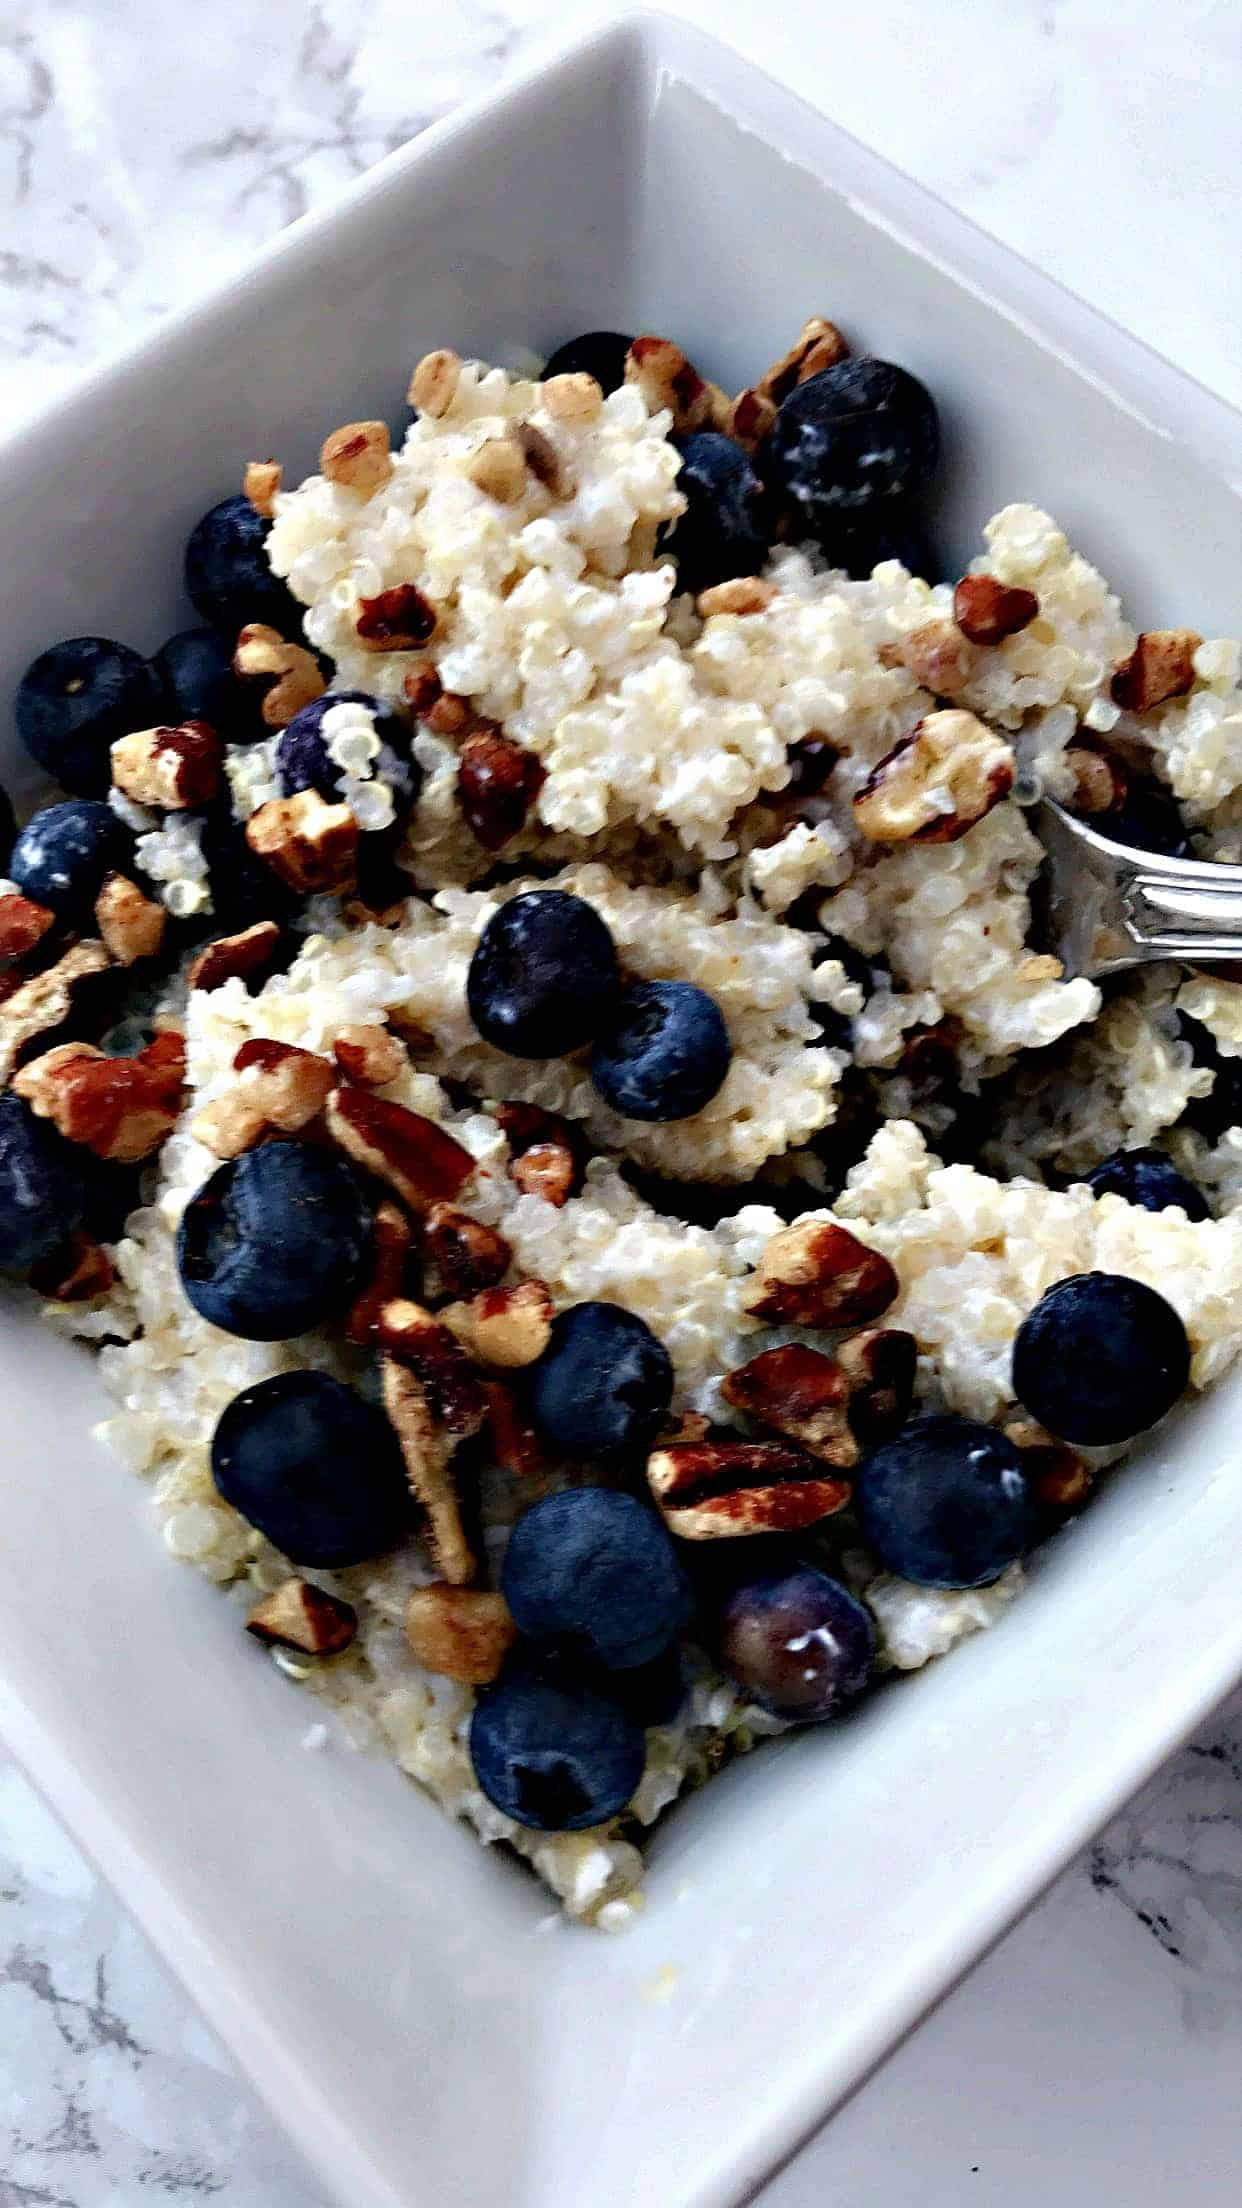 blueberry quinoa breakfast bowl with pecans in a white bowl